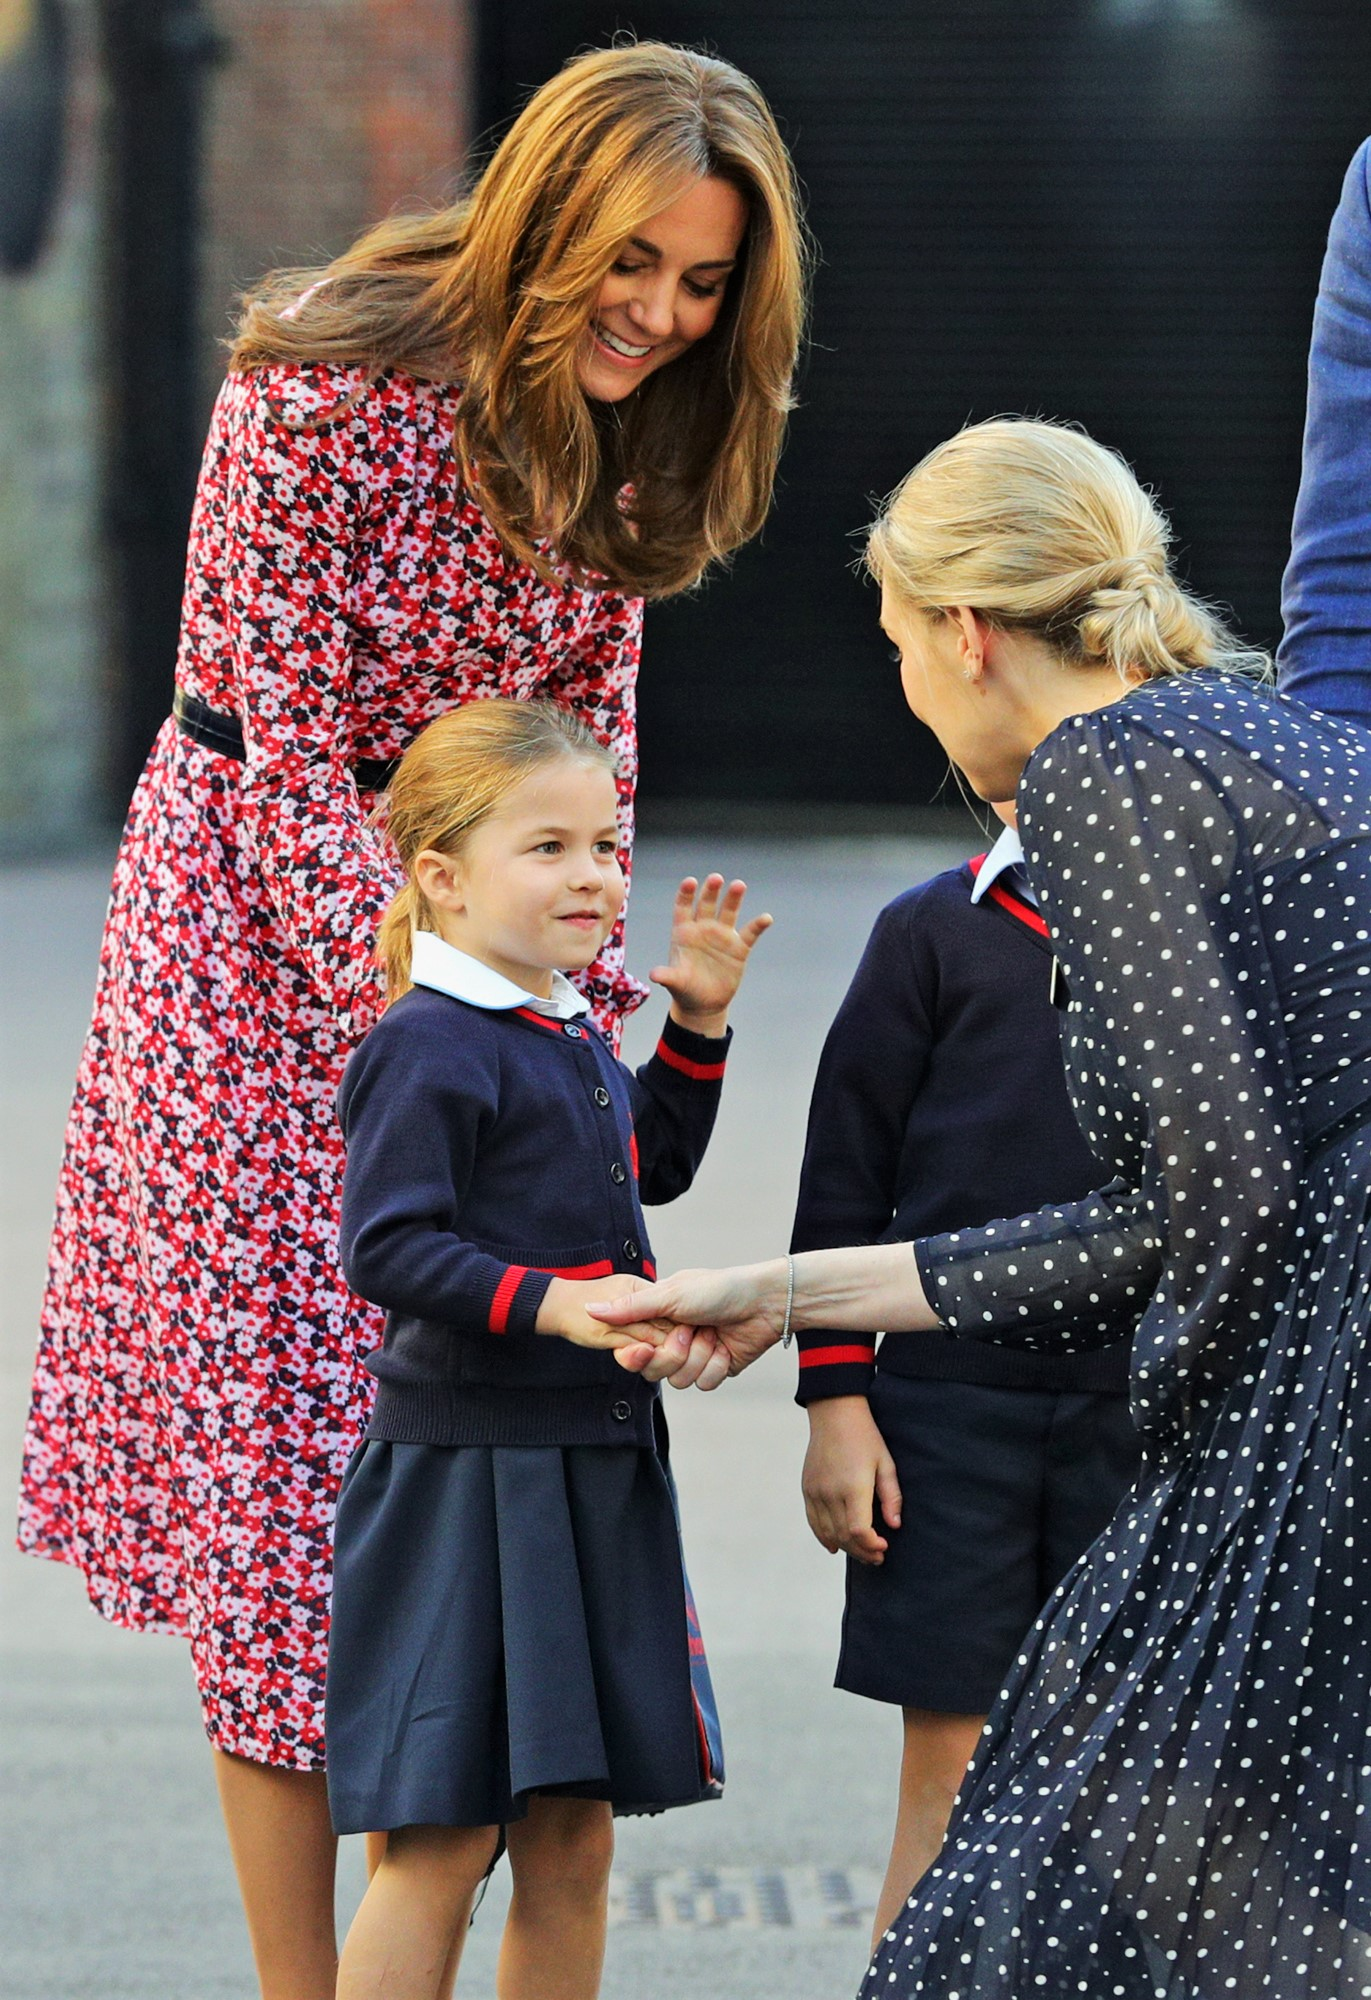 Princess Charlotte's First Day Of School Shaking Teacher's Hand